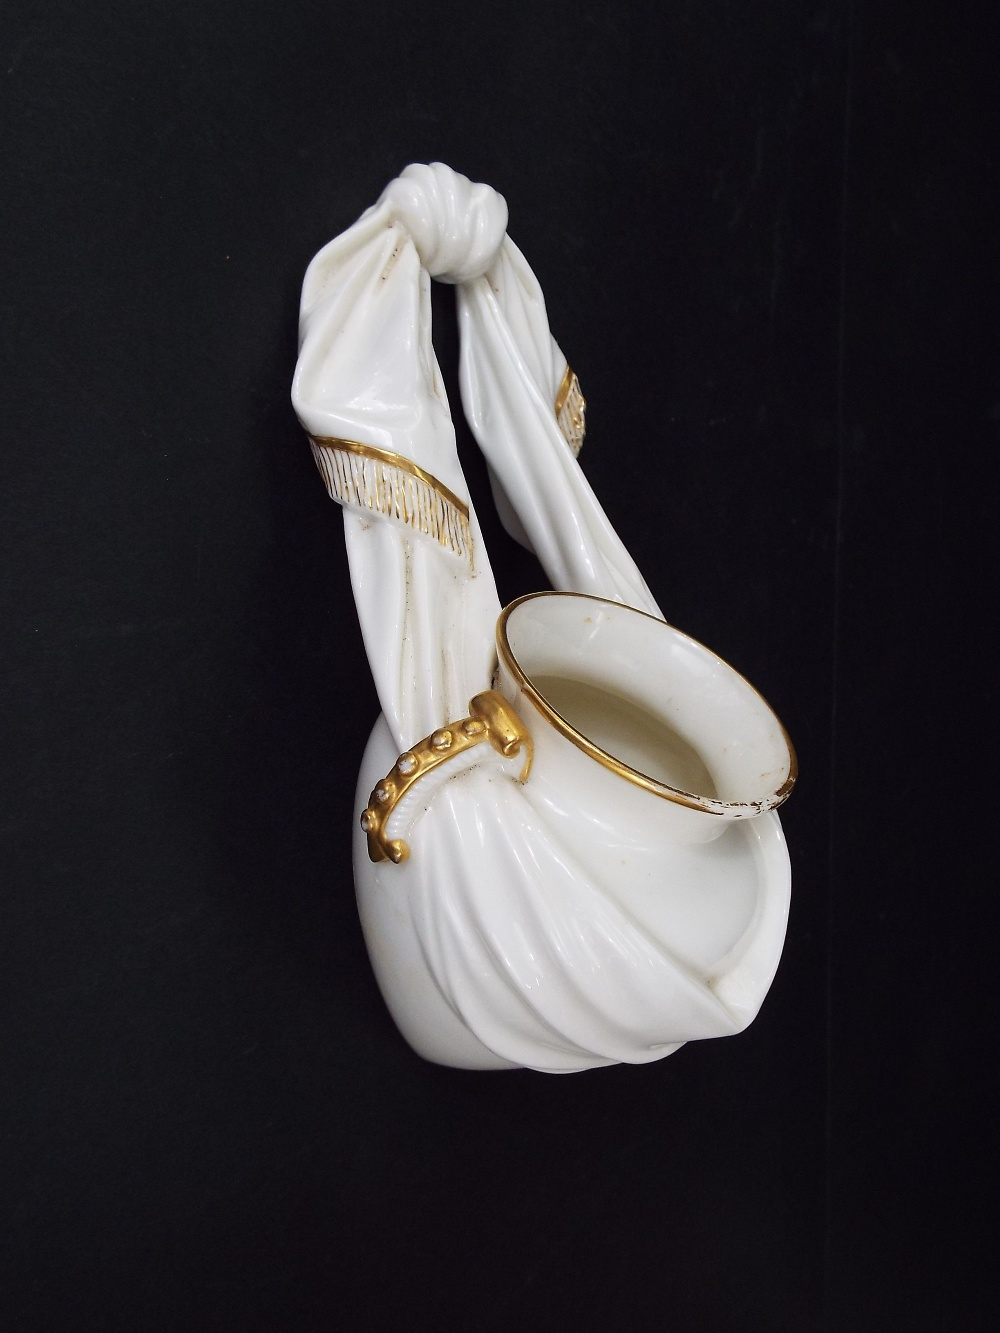 Lot 15 - A Royal Worcester ivory glazed wall pocket modelled as a vase supported by a fringed swag of